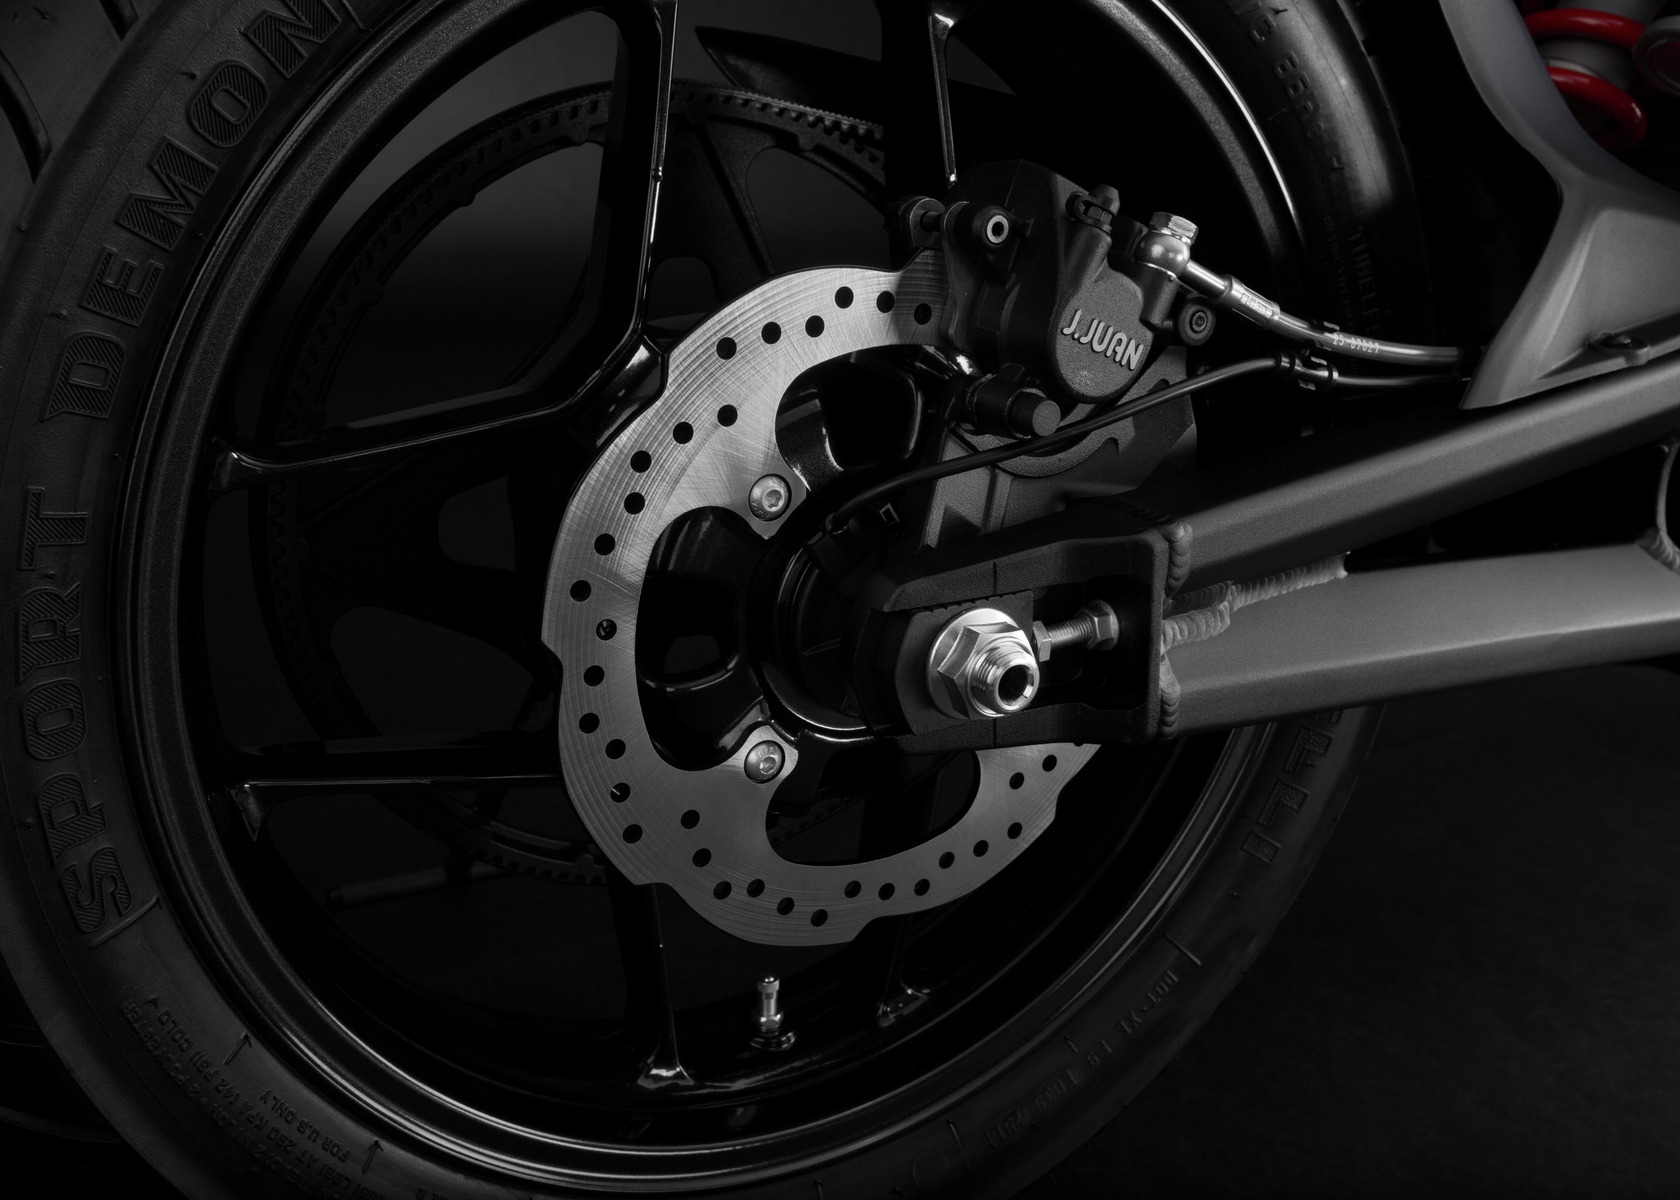 2016 Zero S Electric Motorcycle: Rear Brake